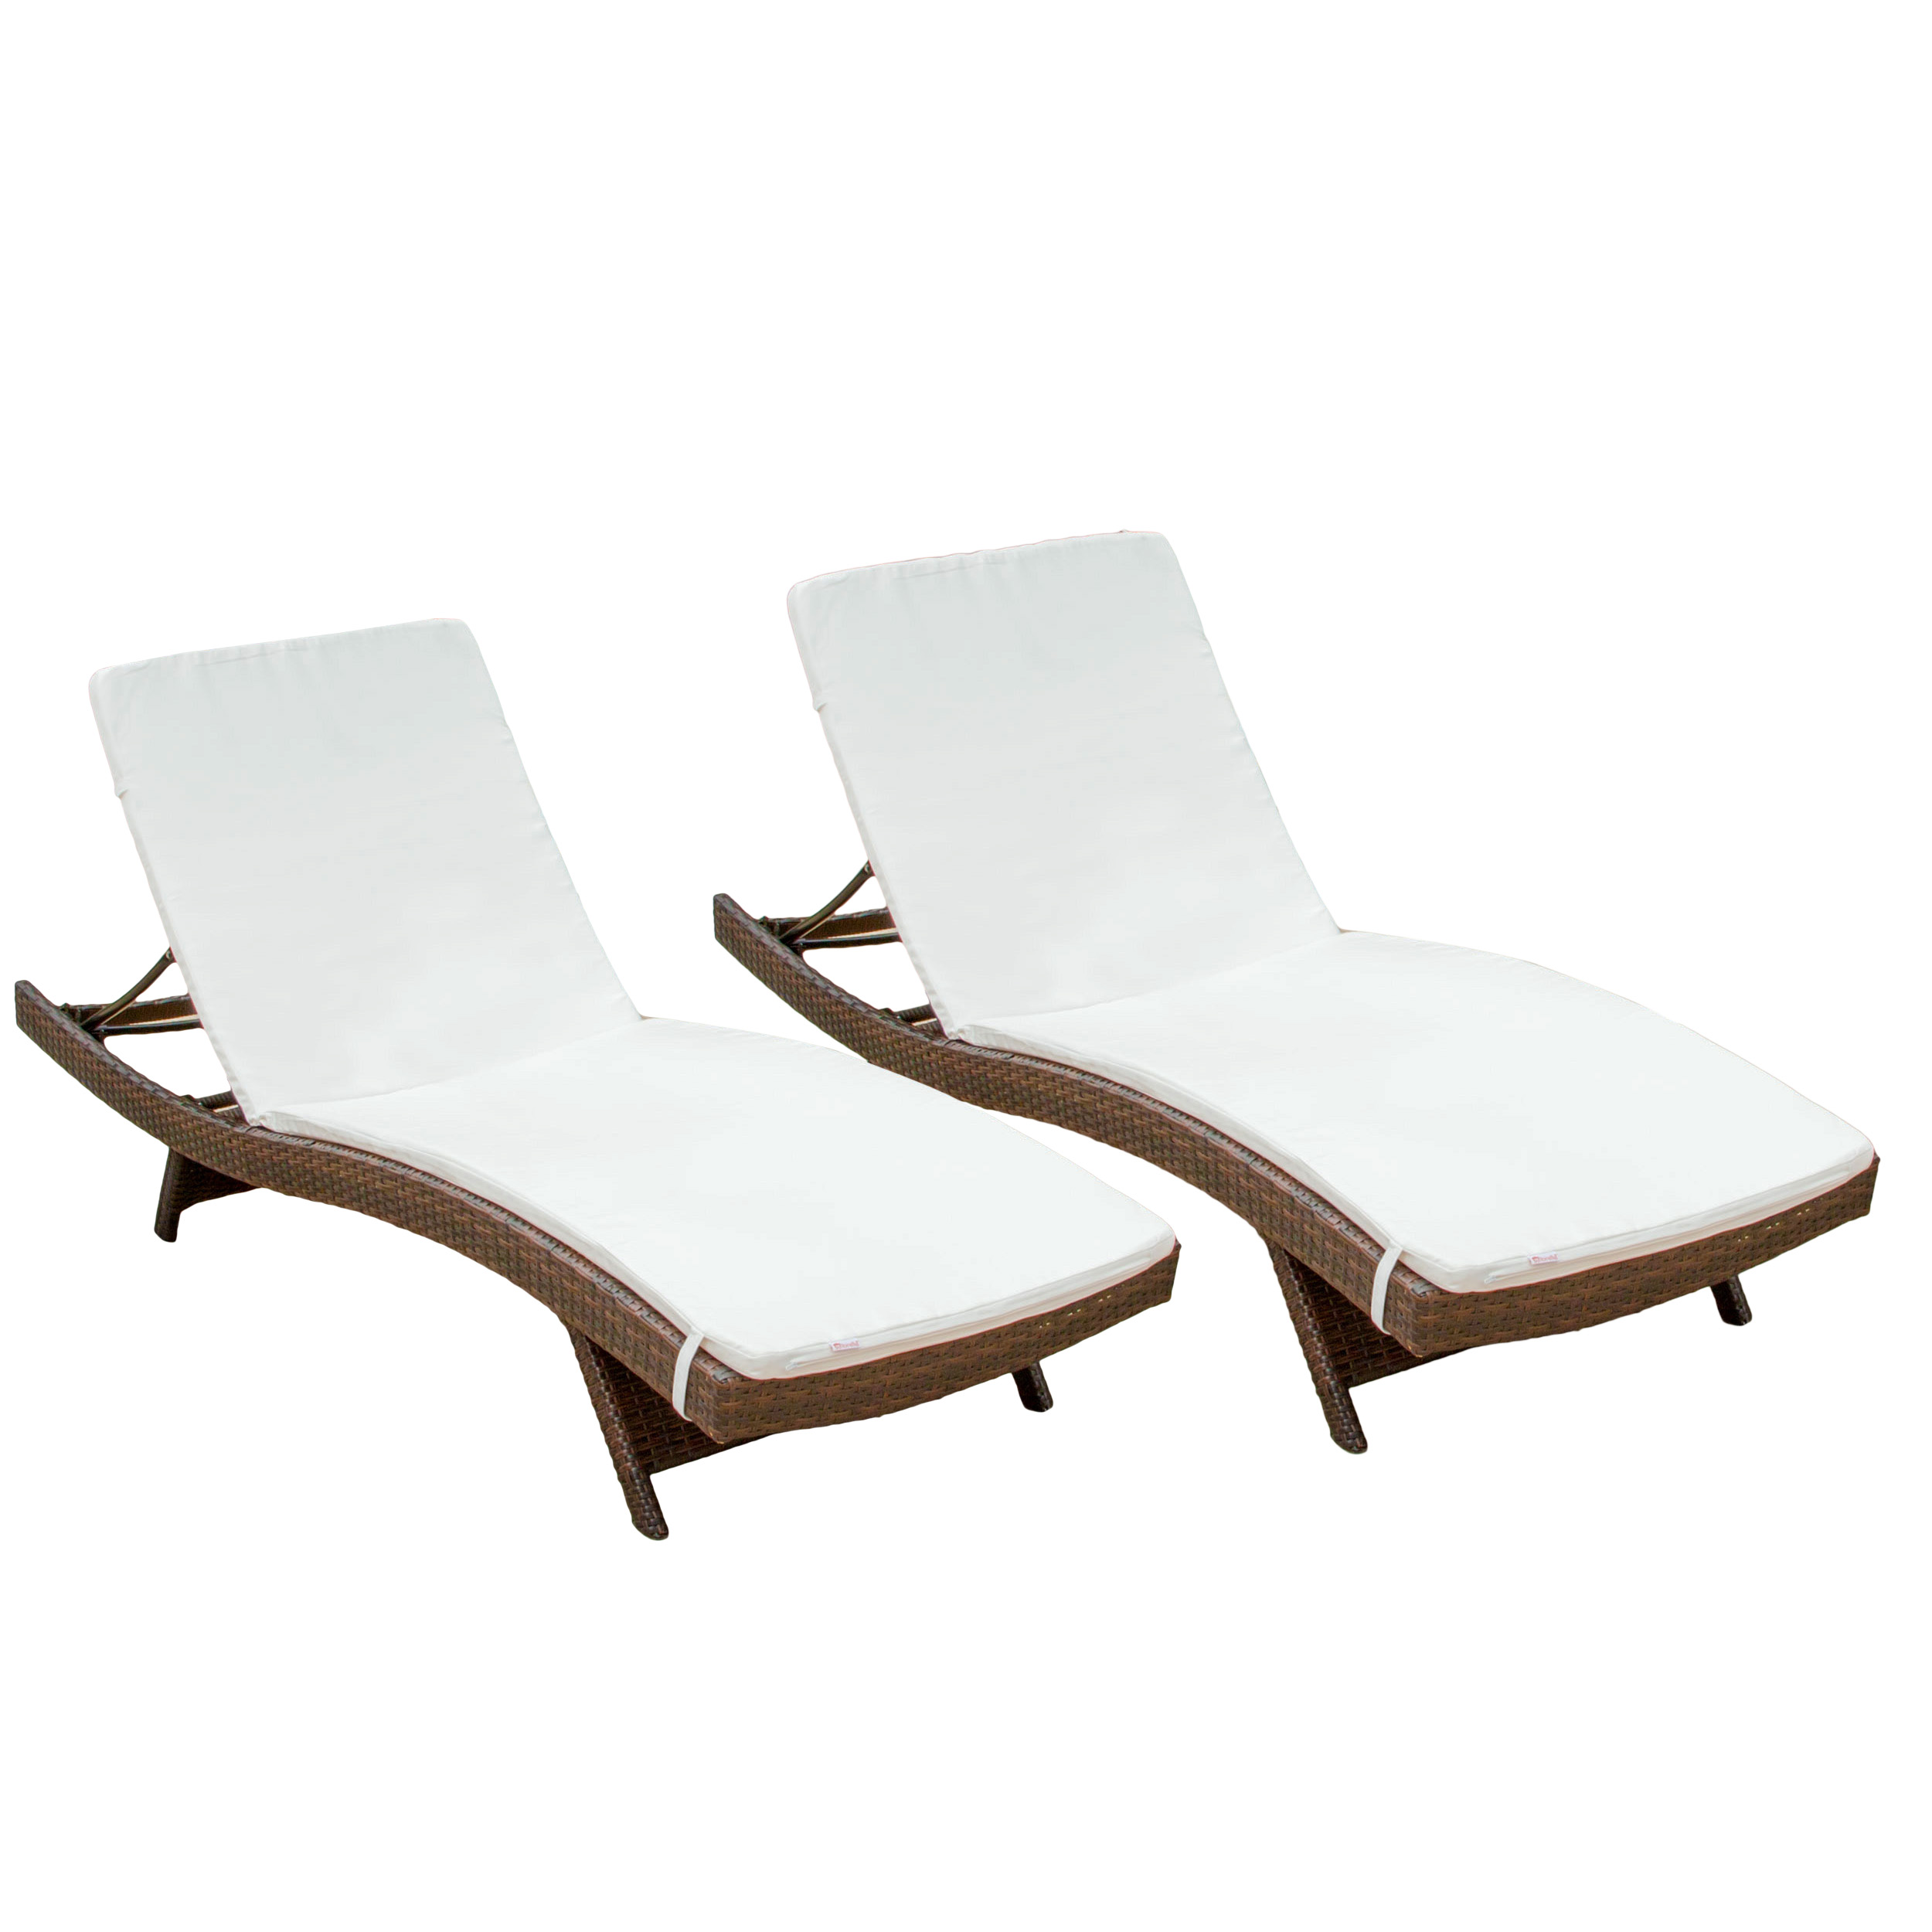 Outdoor Brown Wicker Adjustable Chaise Lounge with Cushions (Set of 2) by GDF Studio